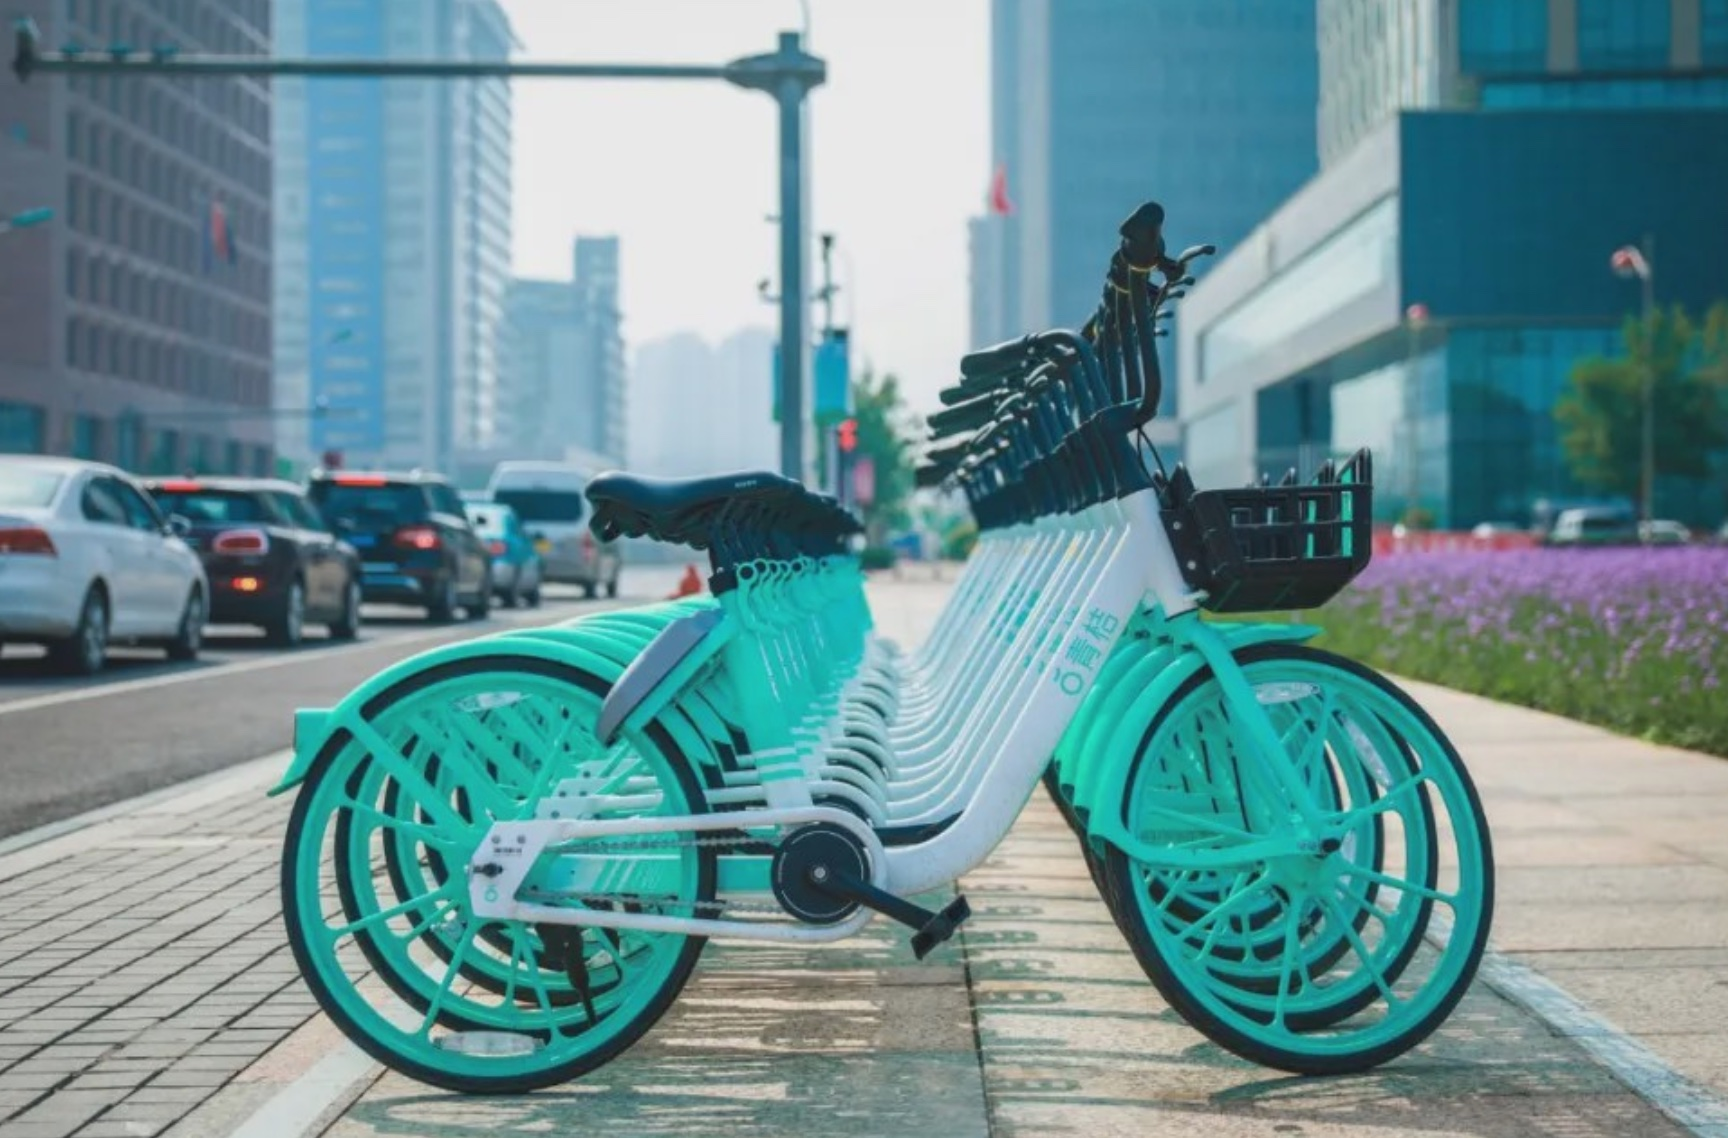 Shenzhen pilot uses BeiDou's high-precision positioning to regulate shared bicycle parking-cnTechPost